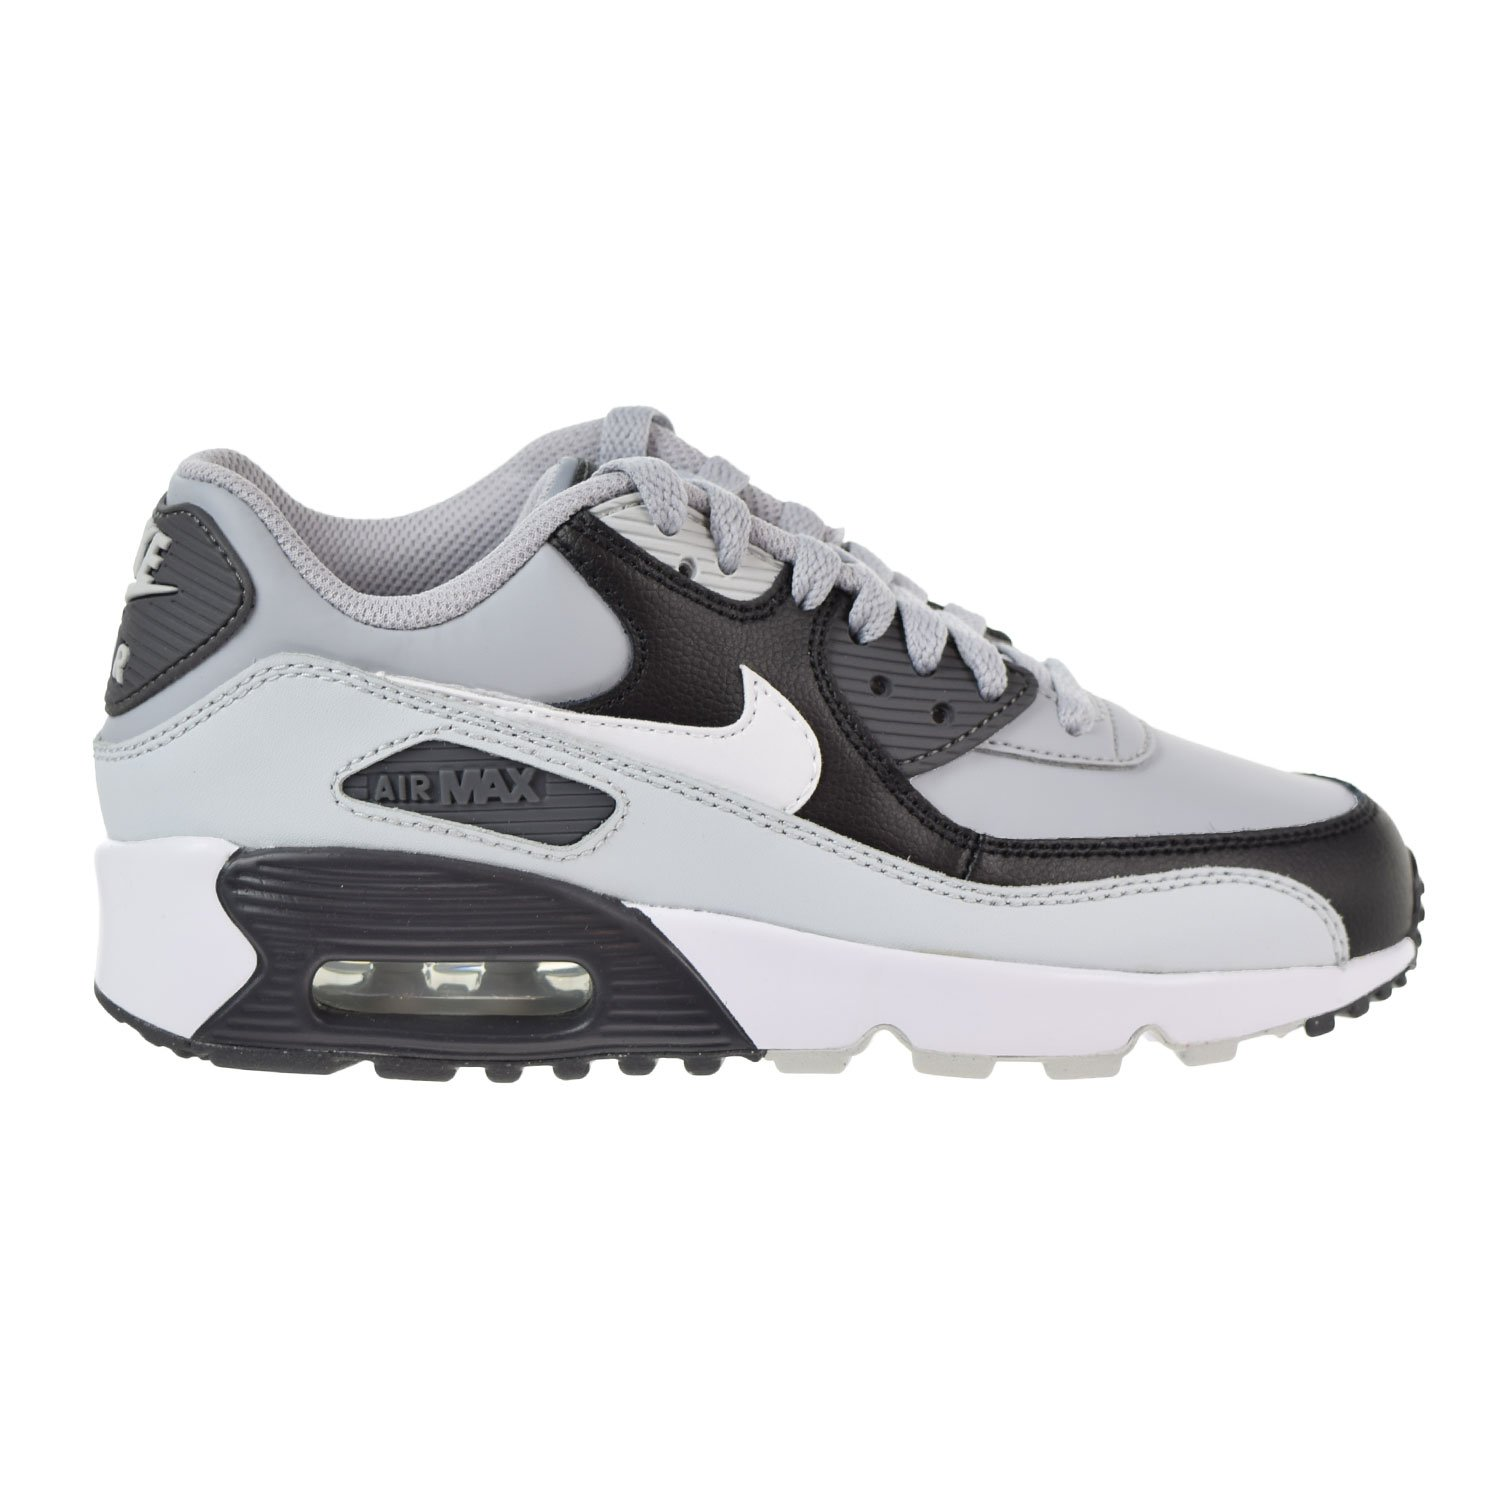 3c0061c932aa0c nike-unisex-kids-air-max-90-2007-(ps